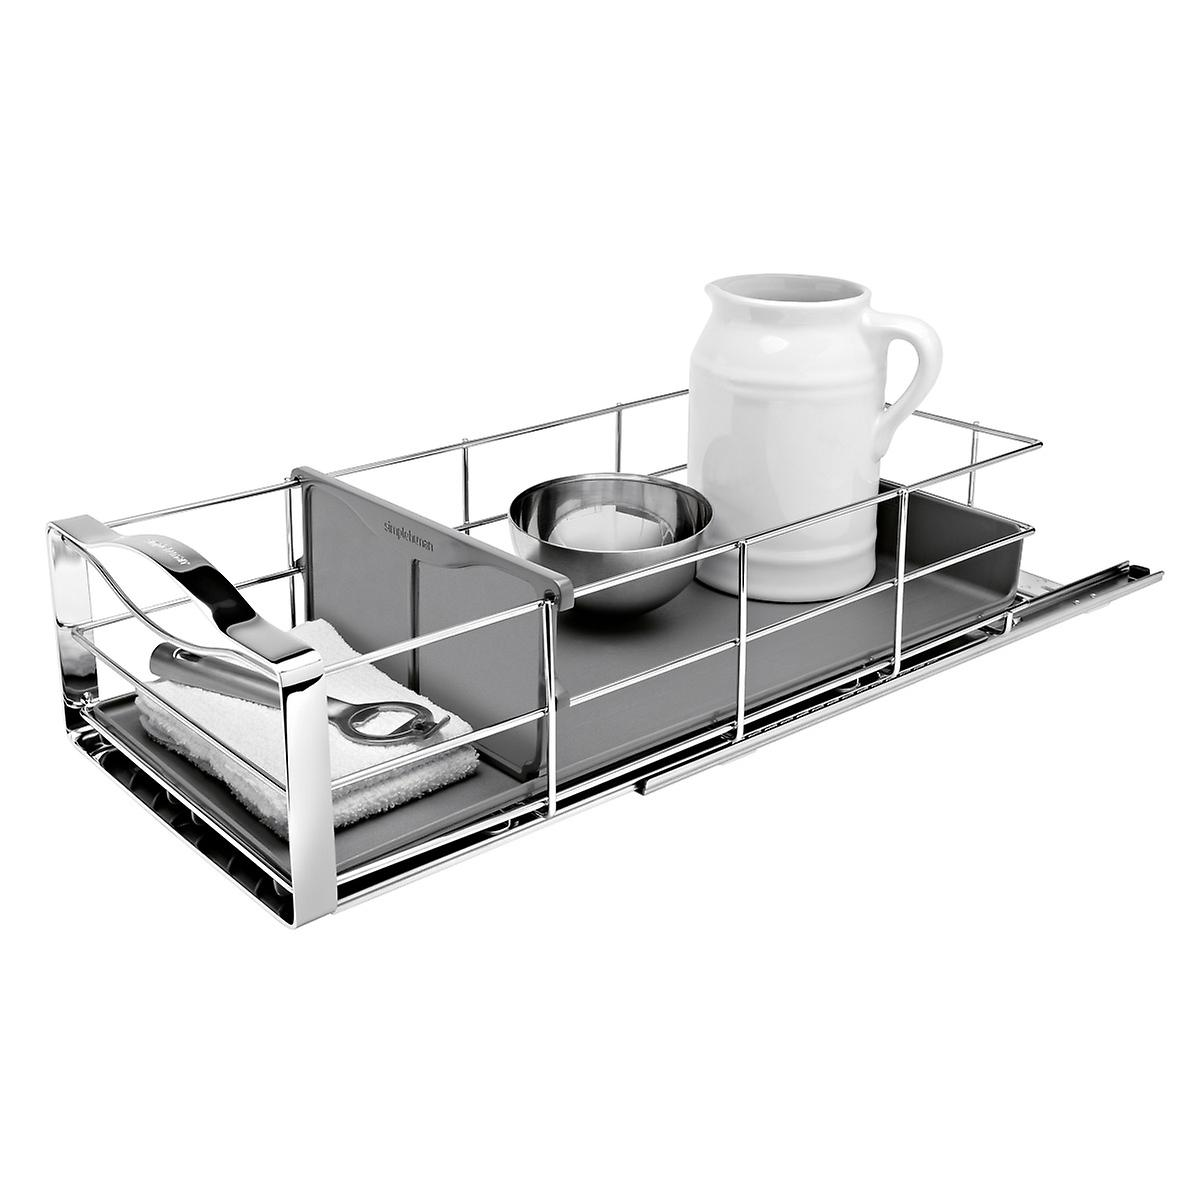 "simplehuman 9"" Pull-Out Cabinet Organizer"